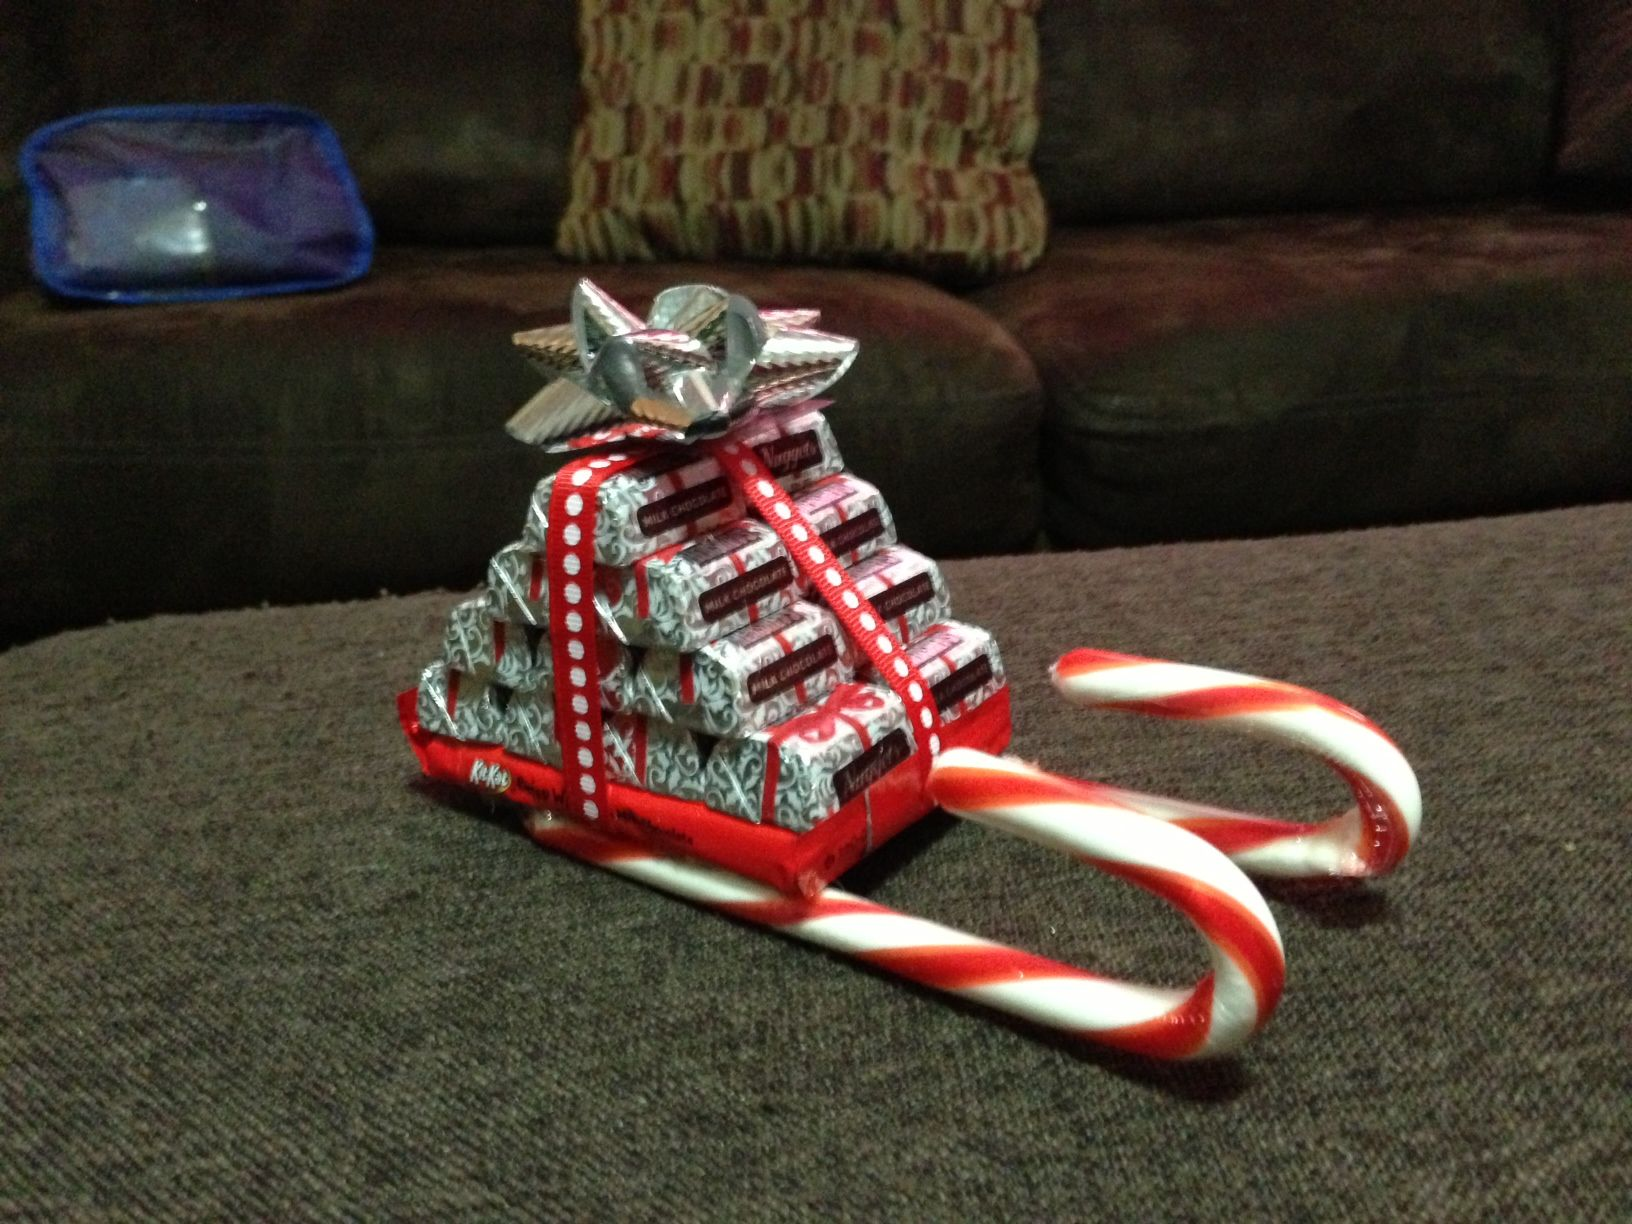 Christmas Ornaments For Kids To Make In School Part - 29: Santau0027s Sleighs Made Out Of Candy! School KidsHomemade ...